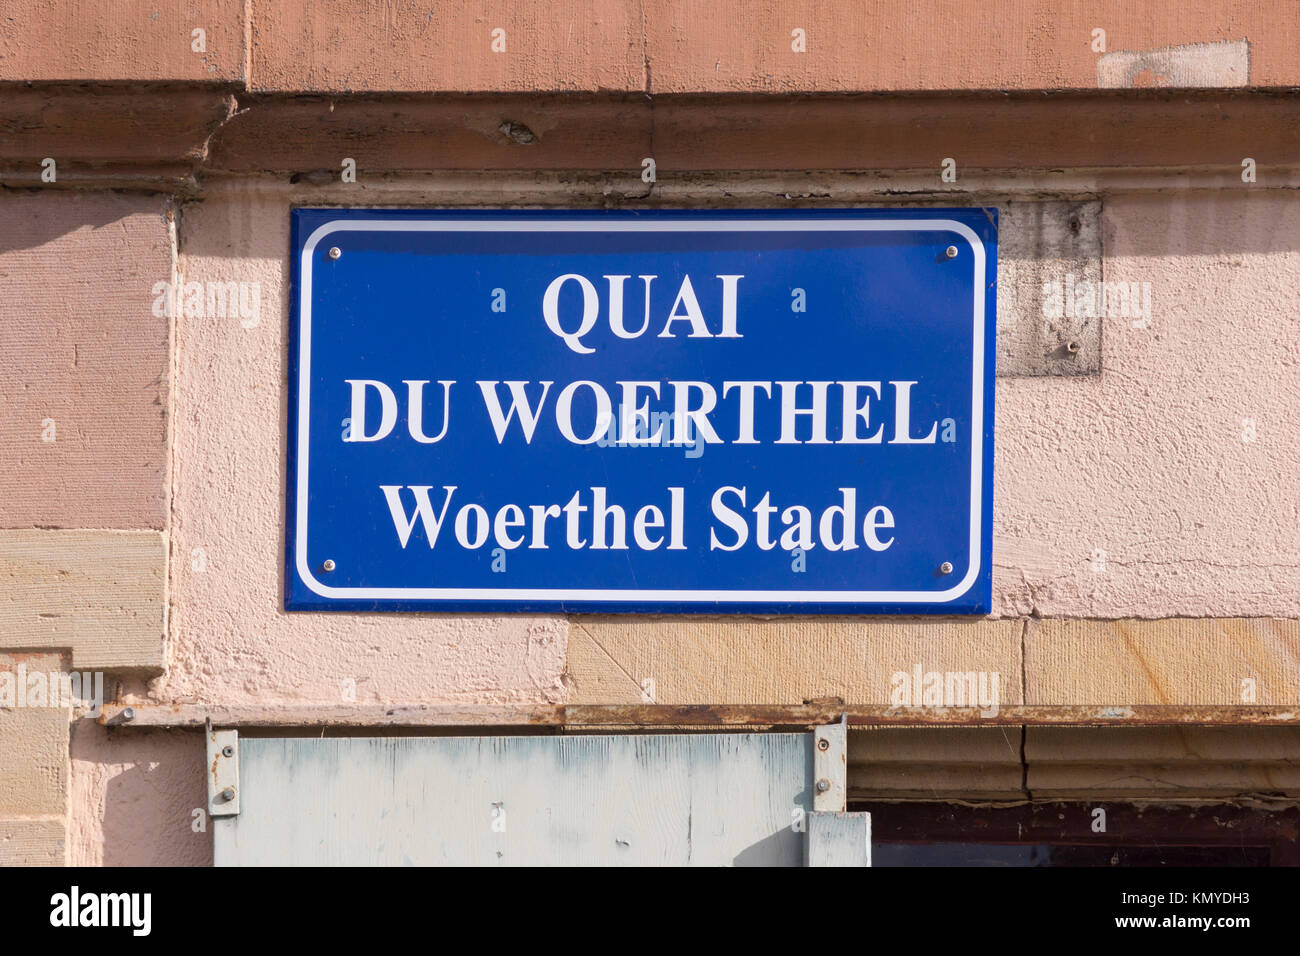 A bilingual French and Alsatian language street sign in Strasbourg, Alsace - Stock Image